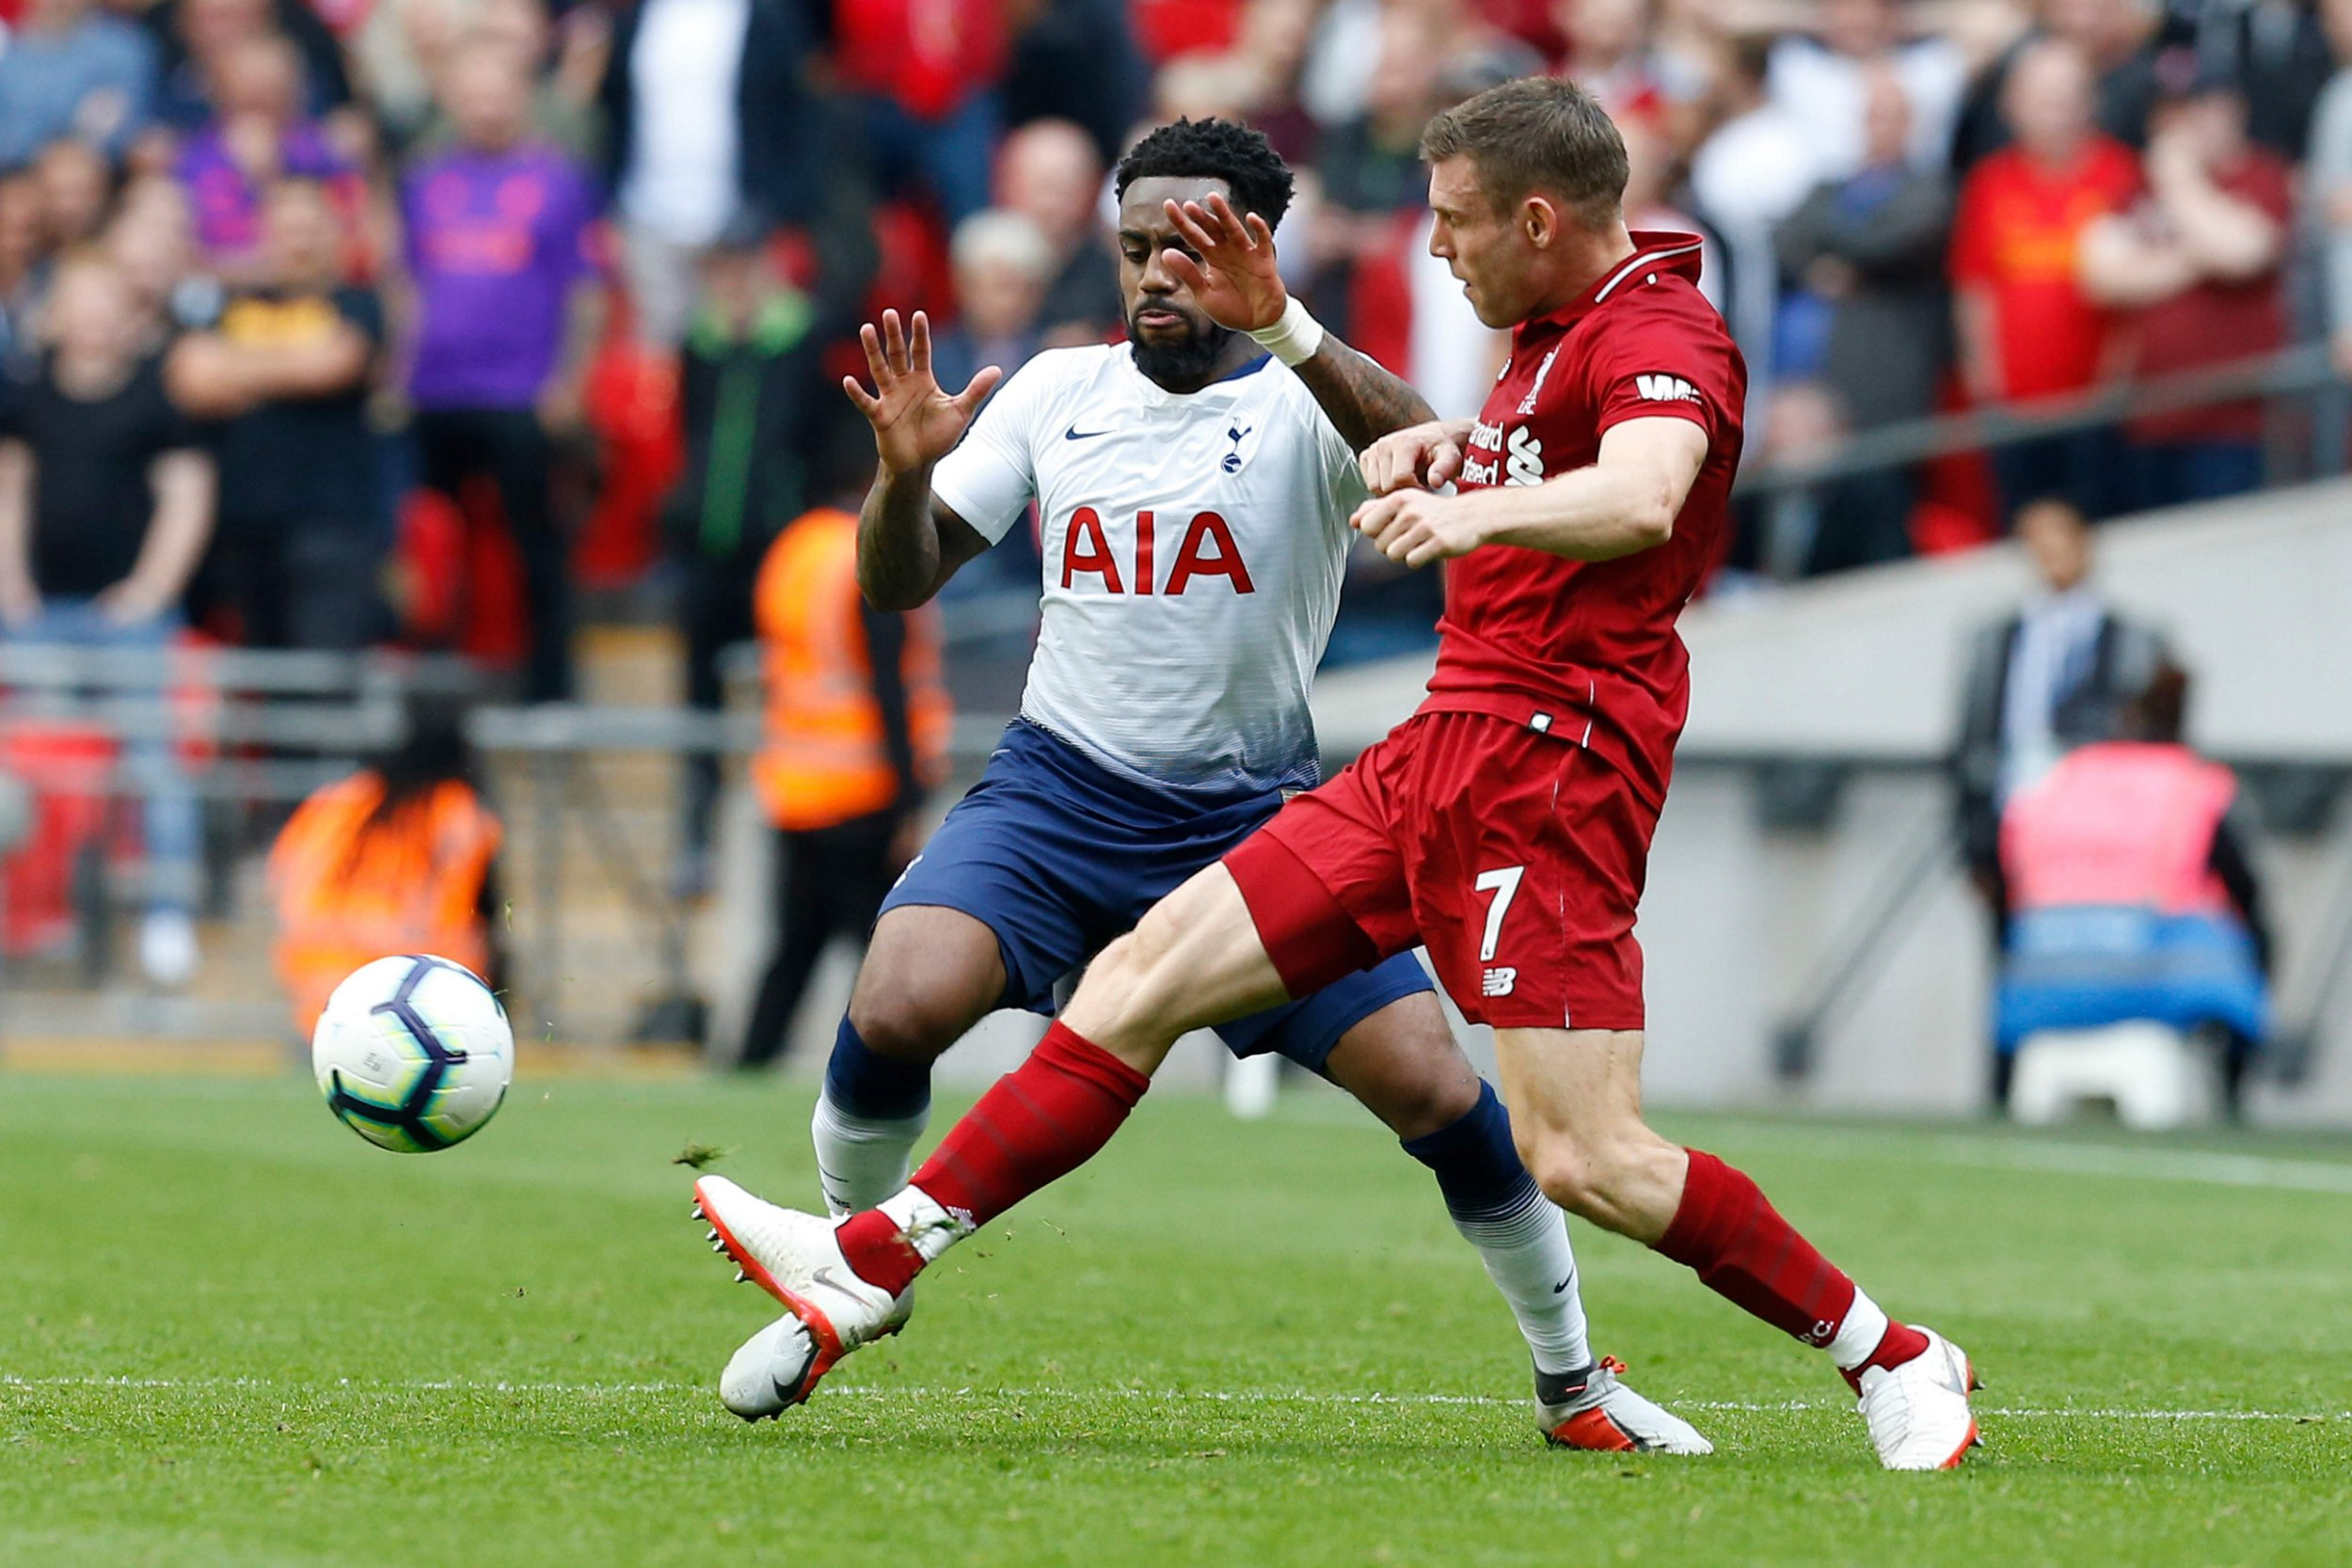 Tottenham Hotspur's English defender Danny Rose (L) vies with Liverpool's English midfielder James Milner during the English Premier League football match between Tottenham Hotspur and Liverpool at Wembley Stadium in London, on September 15, 2018. (Photo by Ian KINGTON / IKIMAGES / AFP) / RESTRICTED TO EDITORIAL USE. No use with unauthorized audio, video, data, fixture lists, club/league logos or 'live' services. Online in-match use limited to 45 images, no video emulation. No use in betting, games or single club/league/player publications.IAN KINGTON/AFP/Getty Images